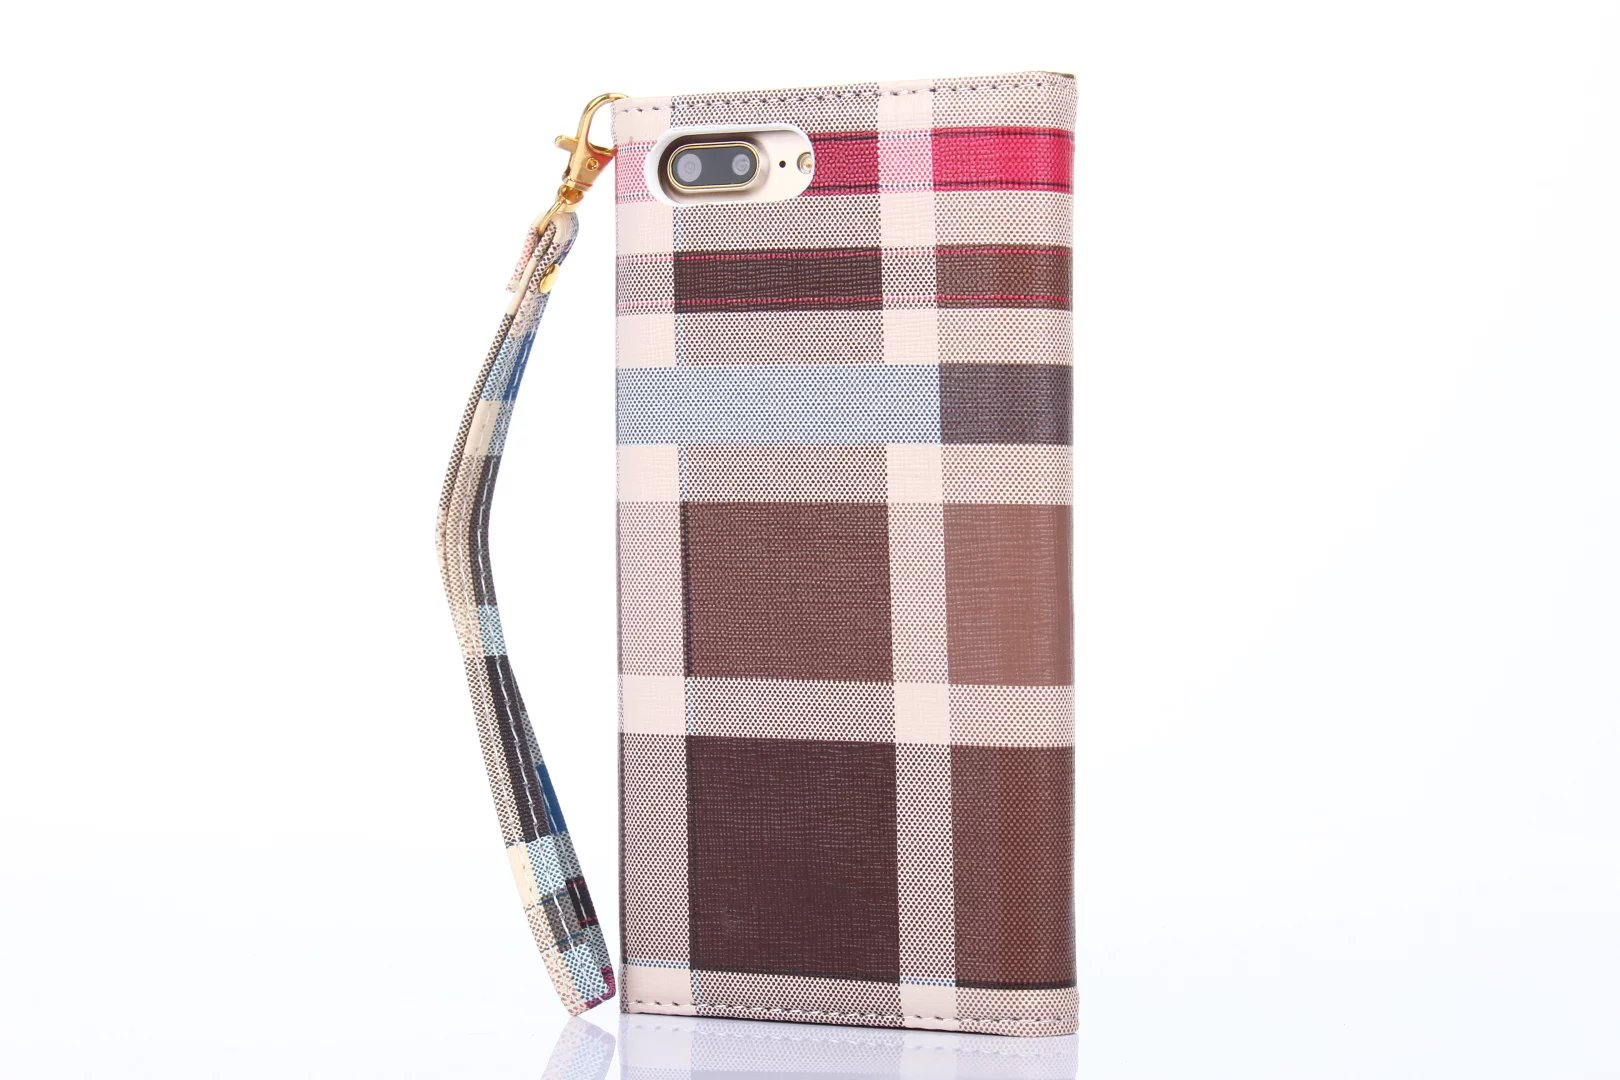 best case for an iphone 8 iphone 8 top cases Burberry iphone 8 case the best cell phone cases iphone 8 cases from apple mobile phone case covers phone cover custom cover of mobile phone iphone 8 leather case